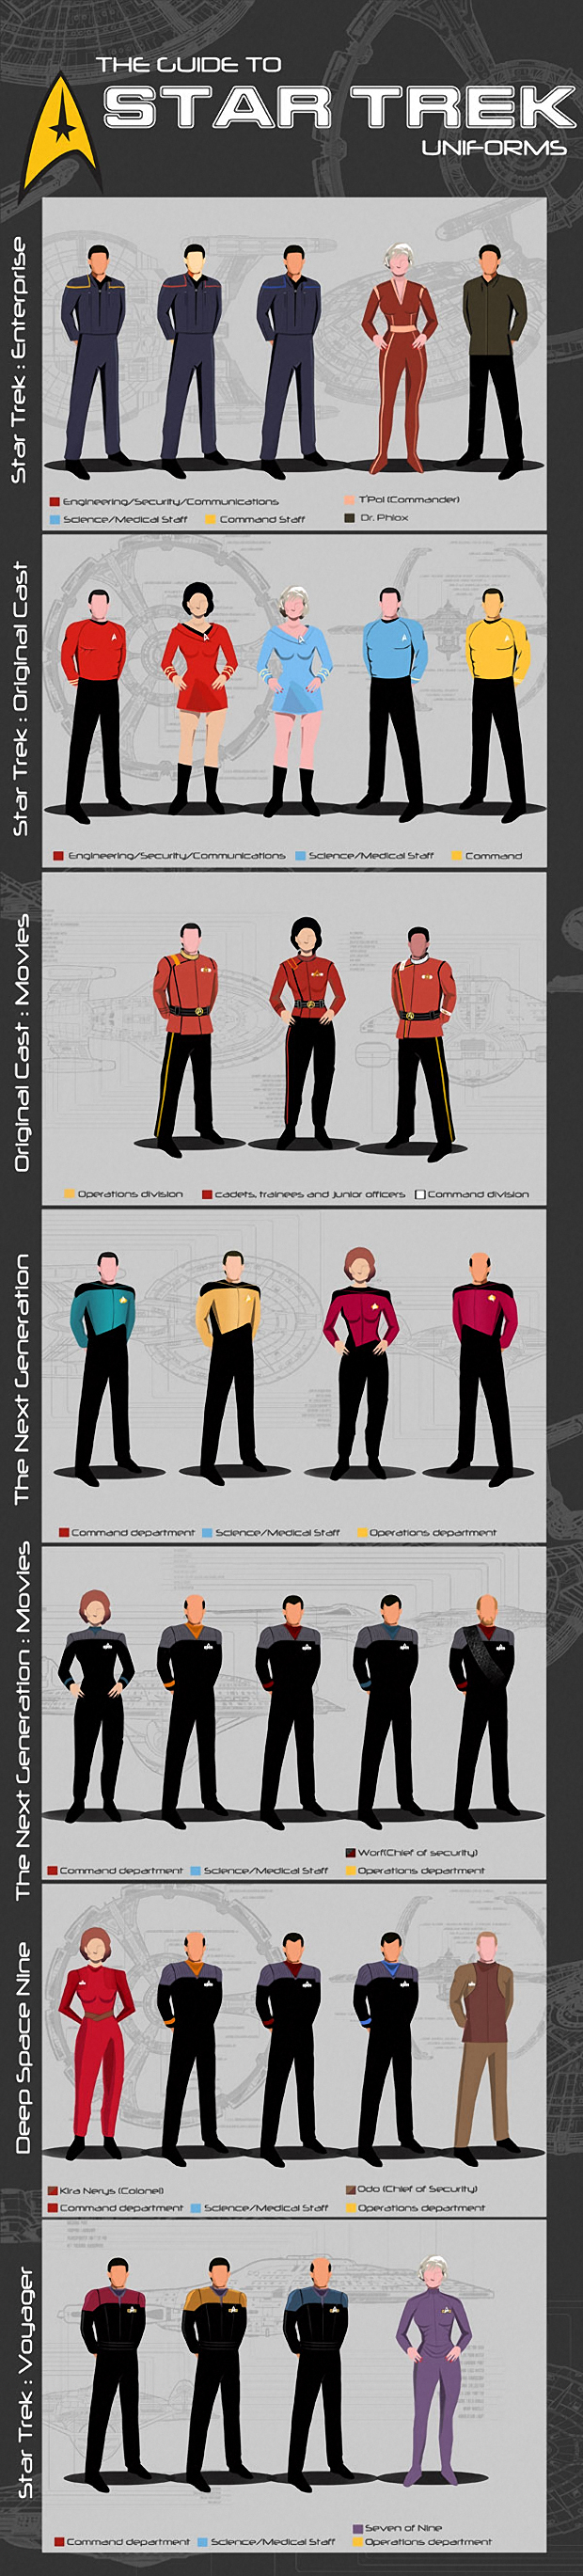 Graphic Guide to Star Trek Uniforms